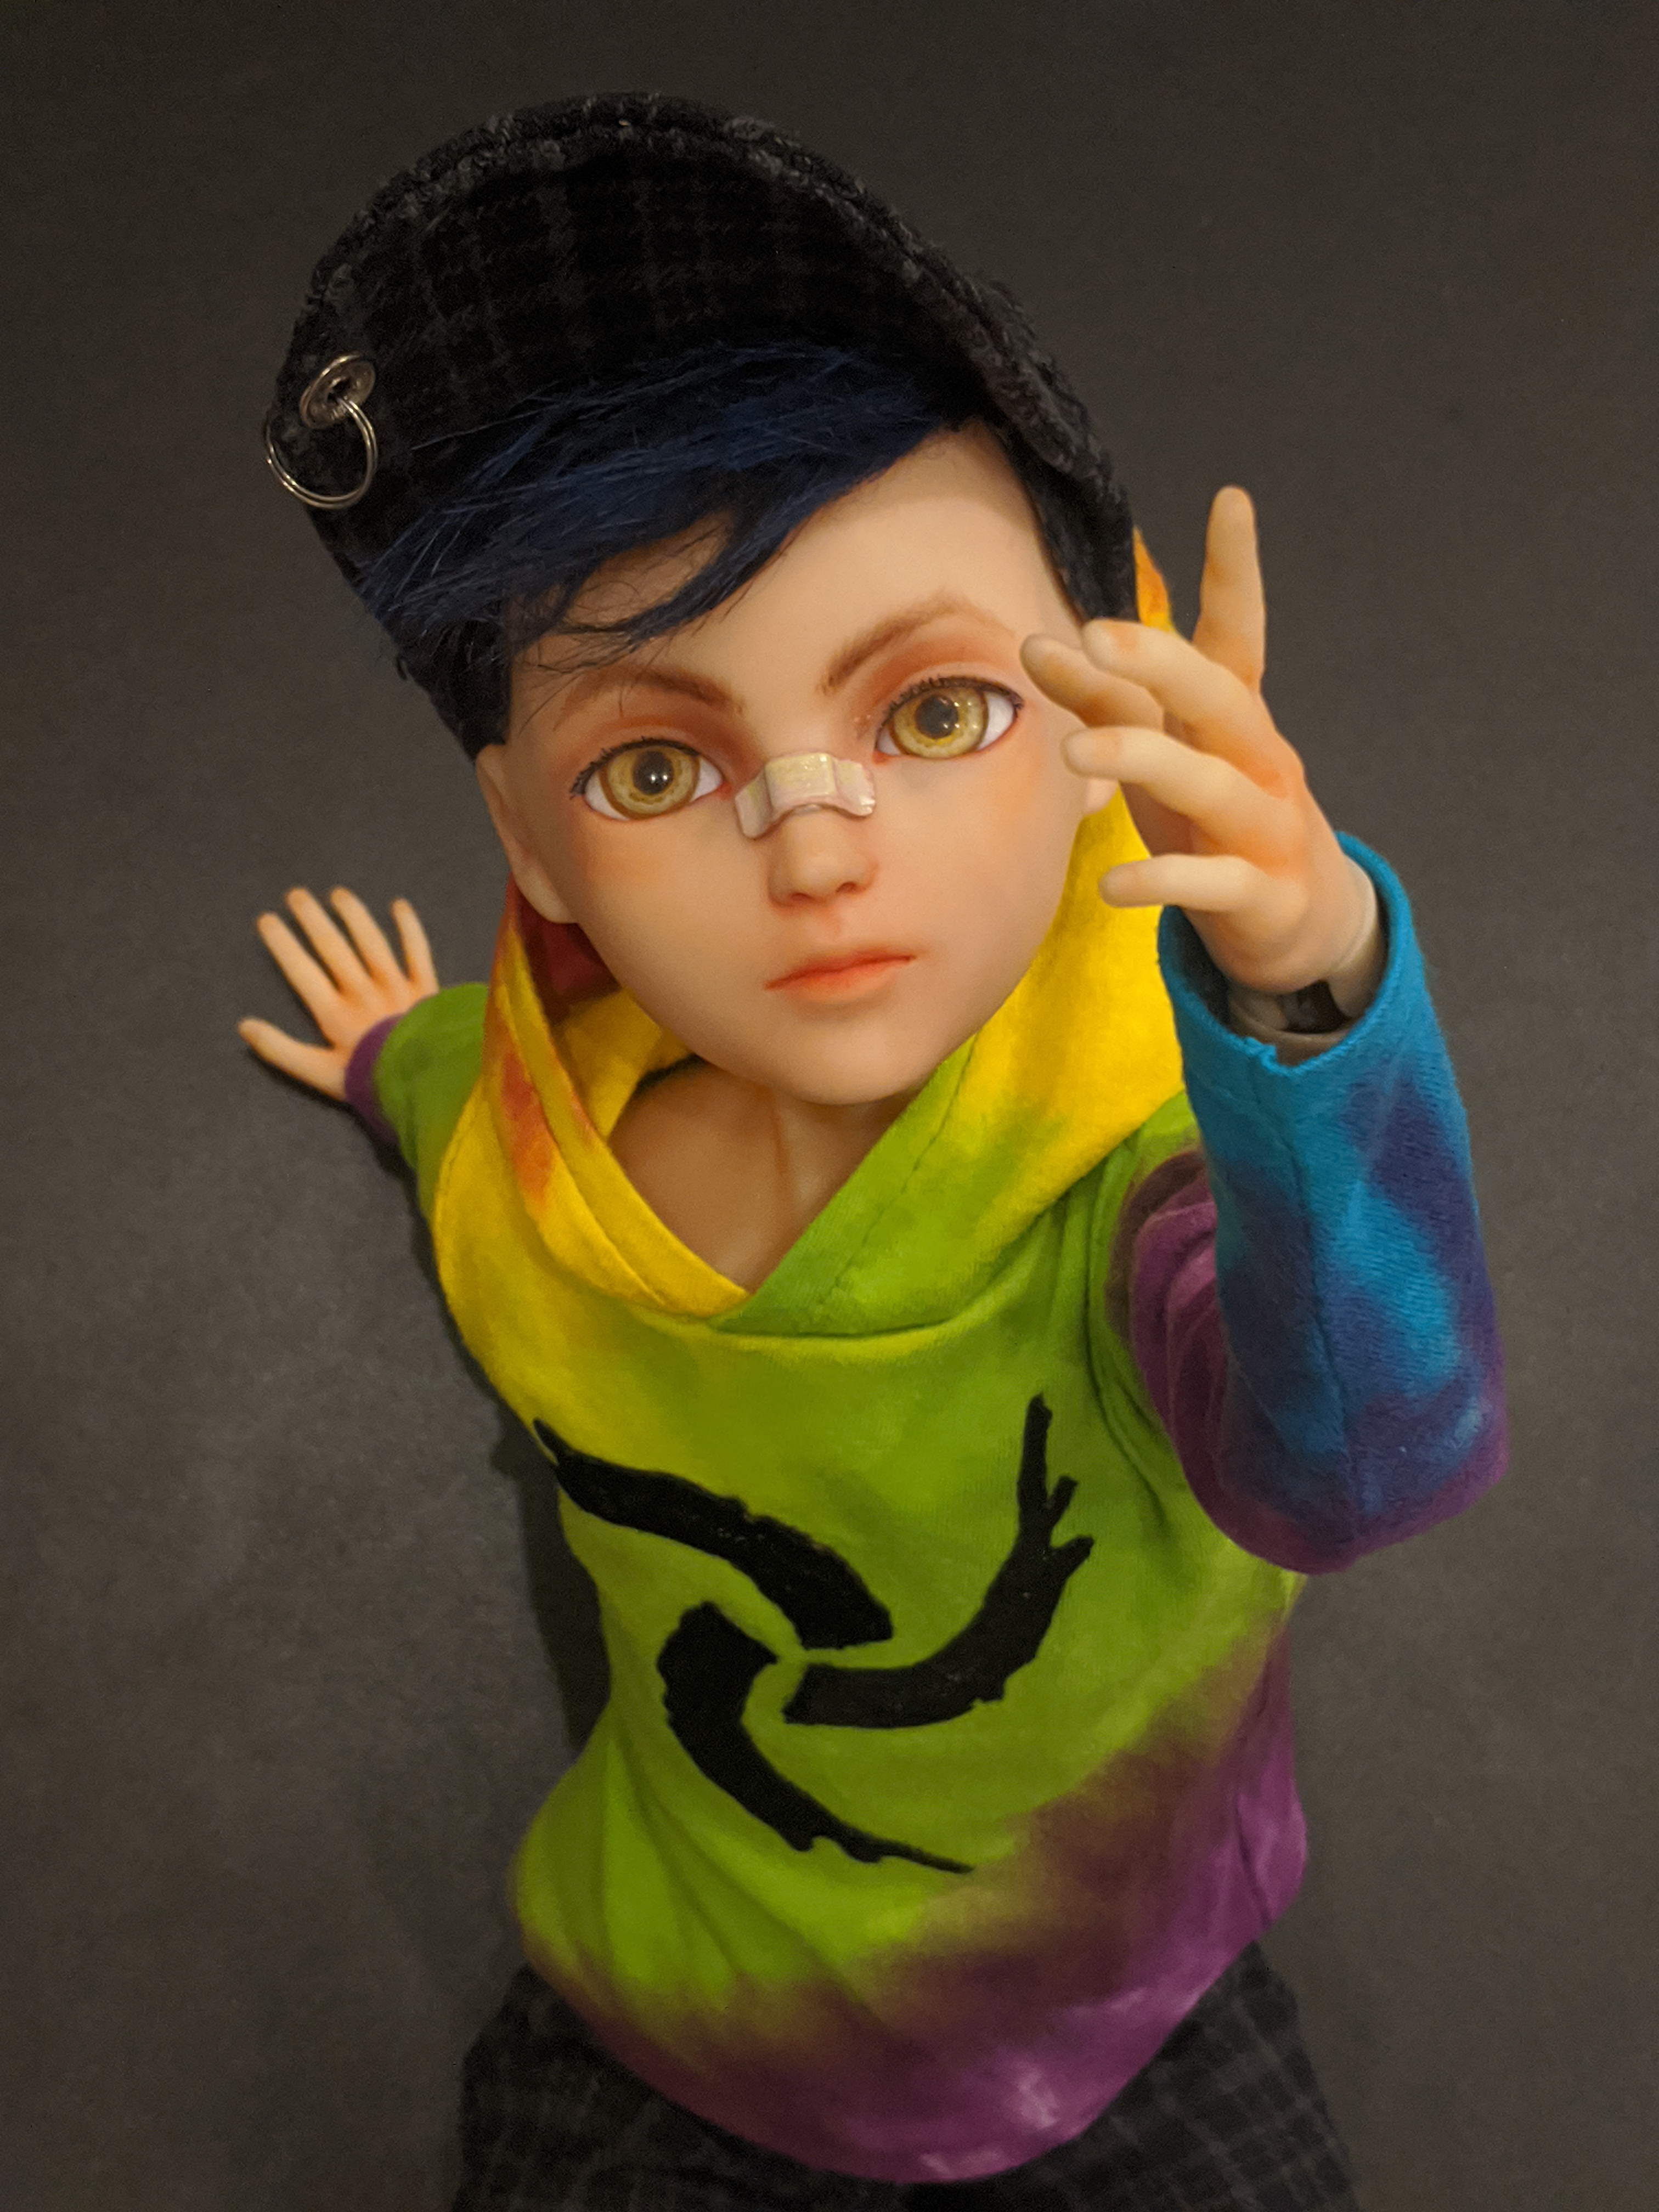 male Ball jointed doll (BJD)